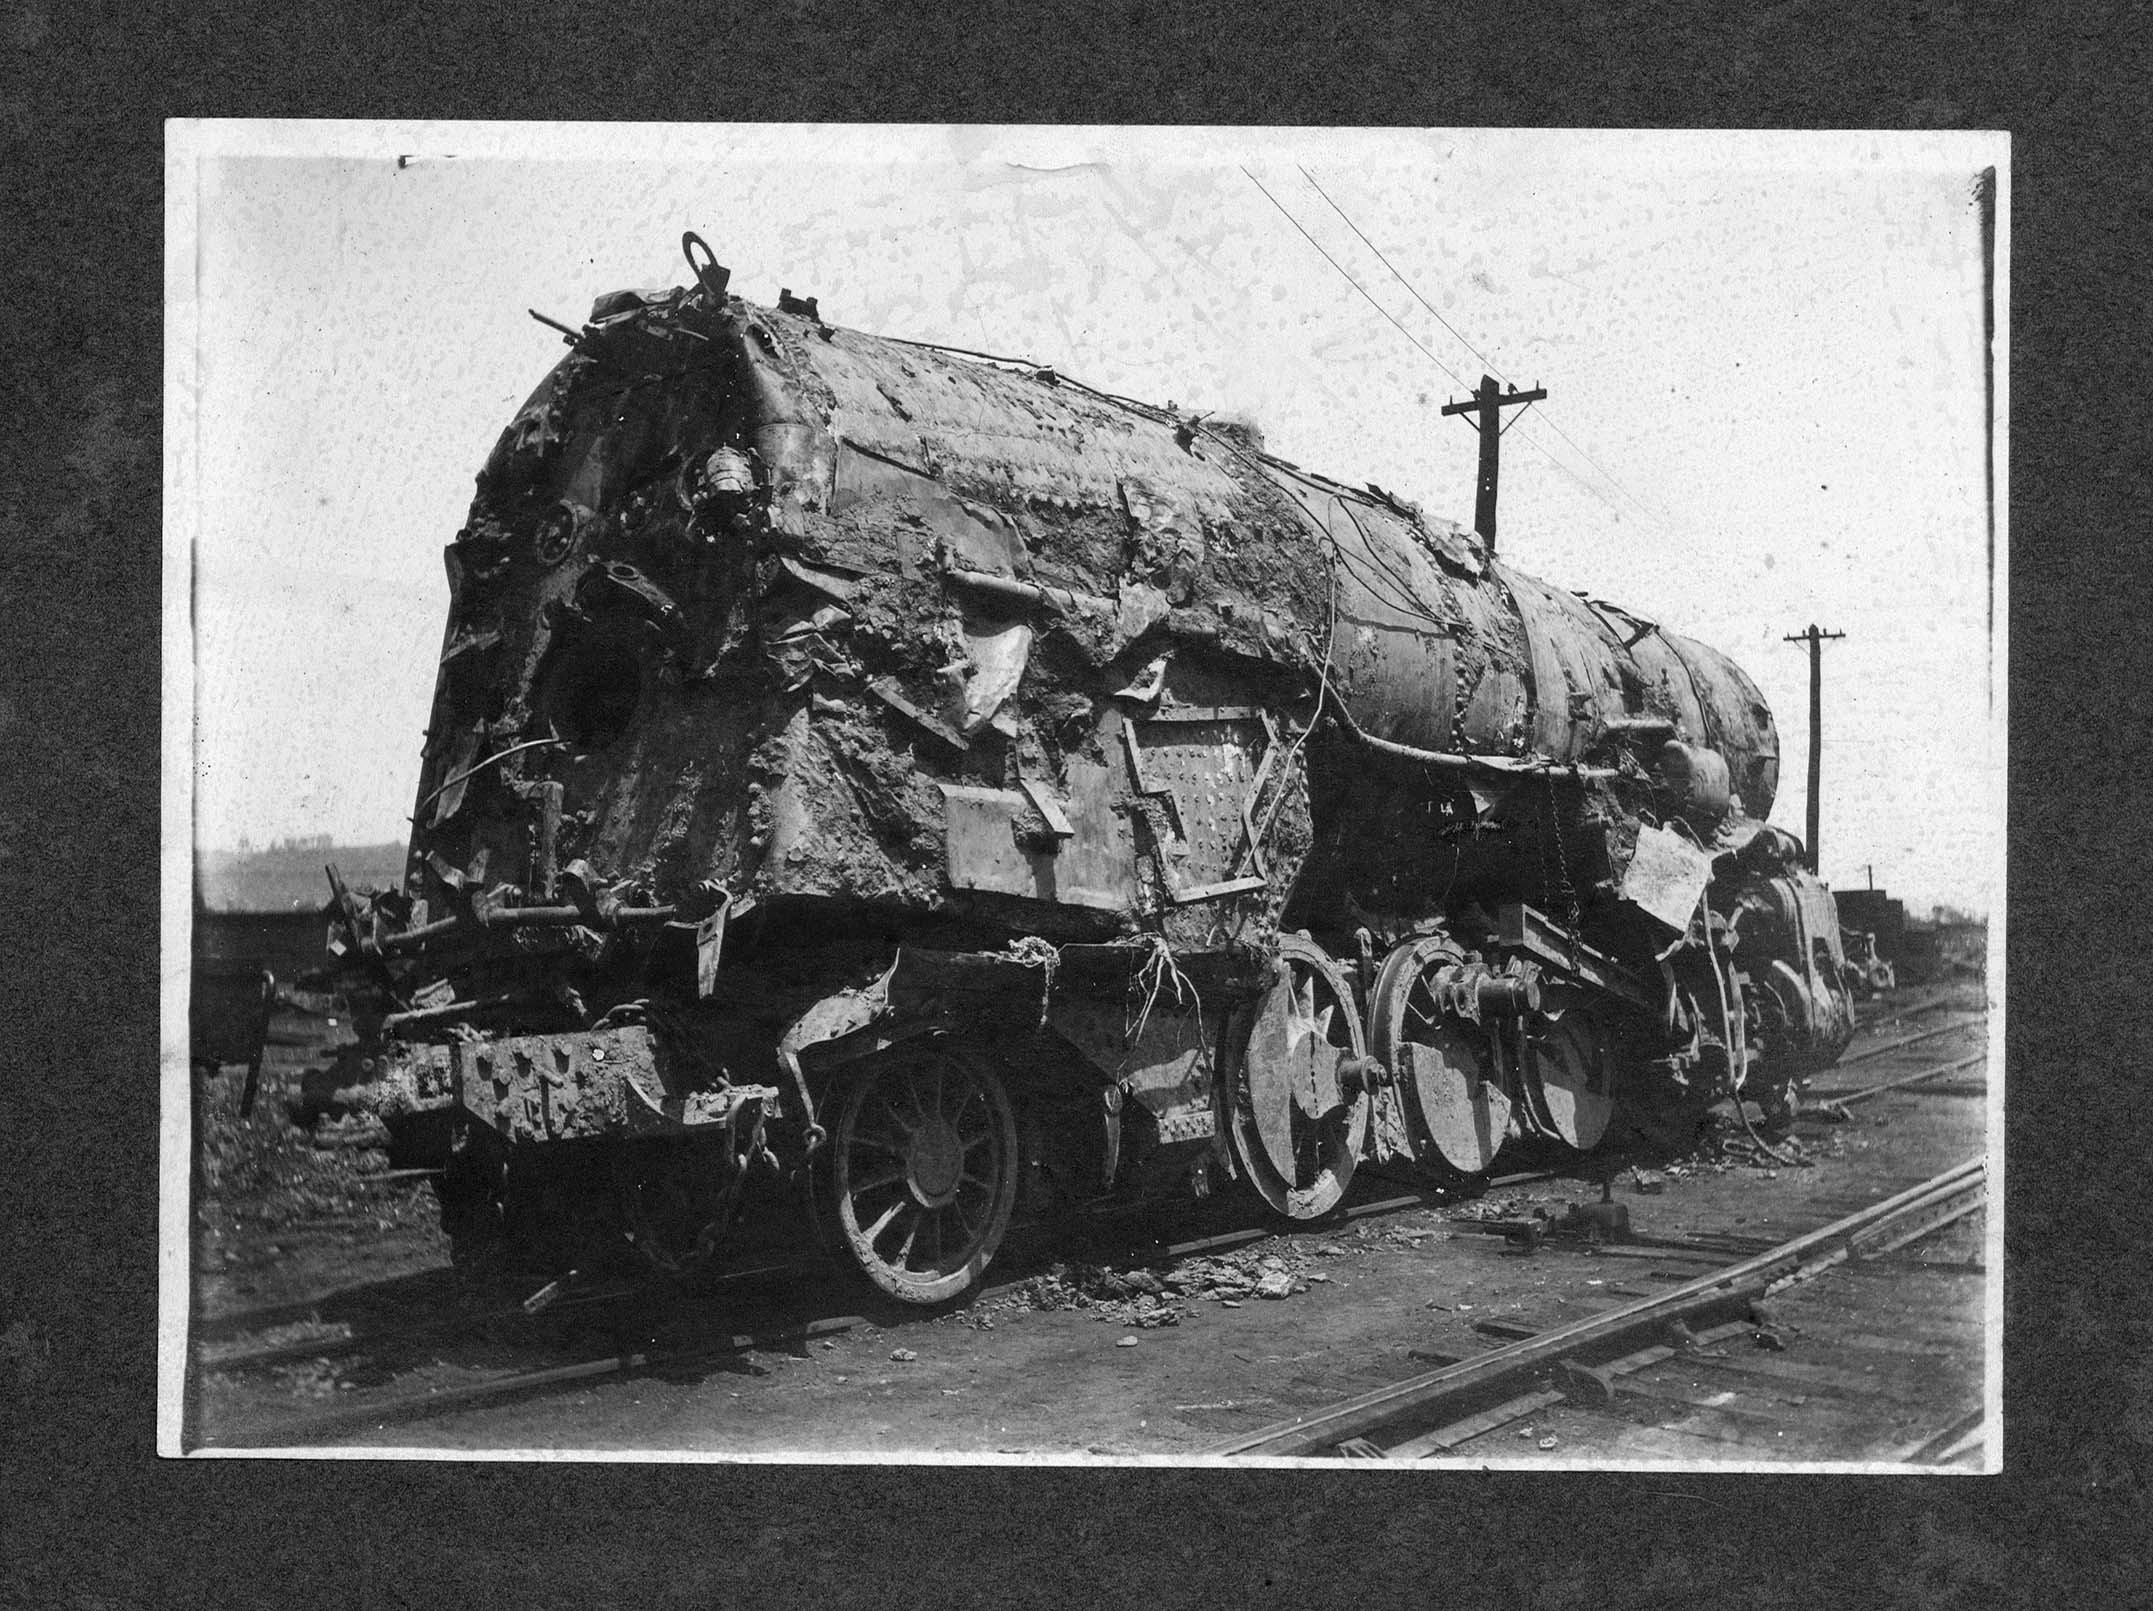 The badly damaged Engine No. 820 was recovered in June 1913 and eventually returned to service. Image courtesy of Marshall University Special Collections.